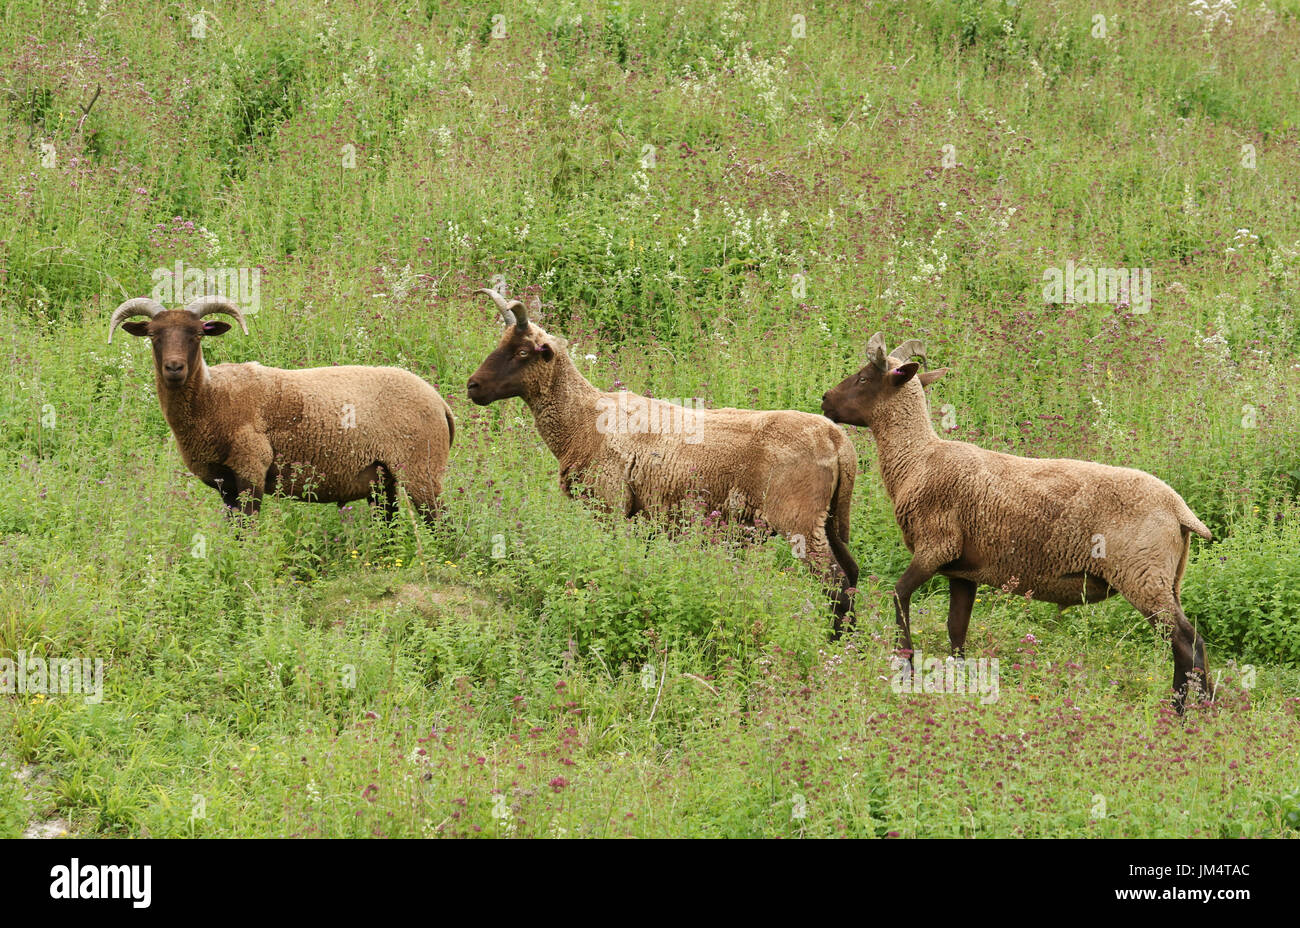 A small herd of rare breed Manx Loaghtan Sheep (Ovis aries) grazing on a herb covered hillside. - Stock Image